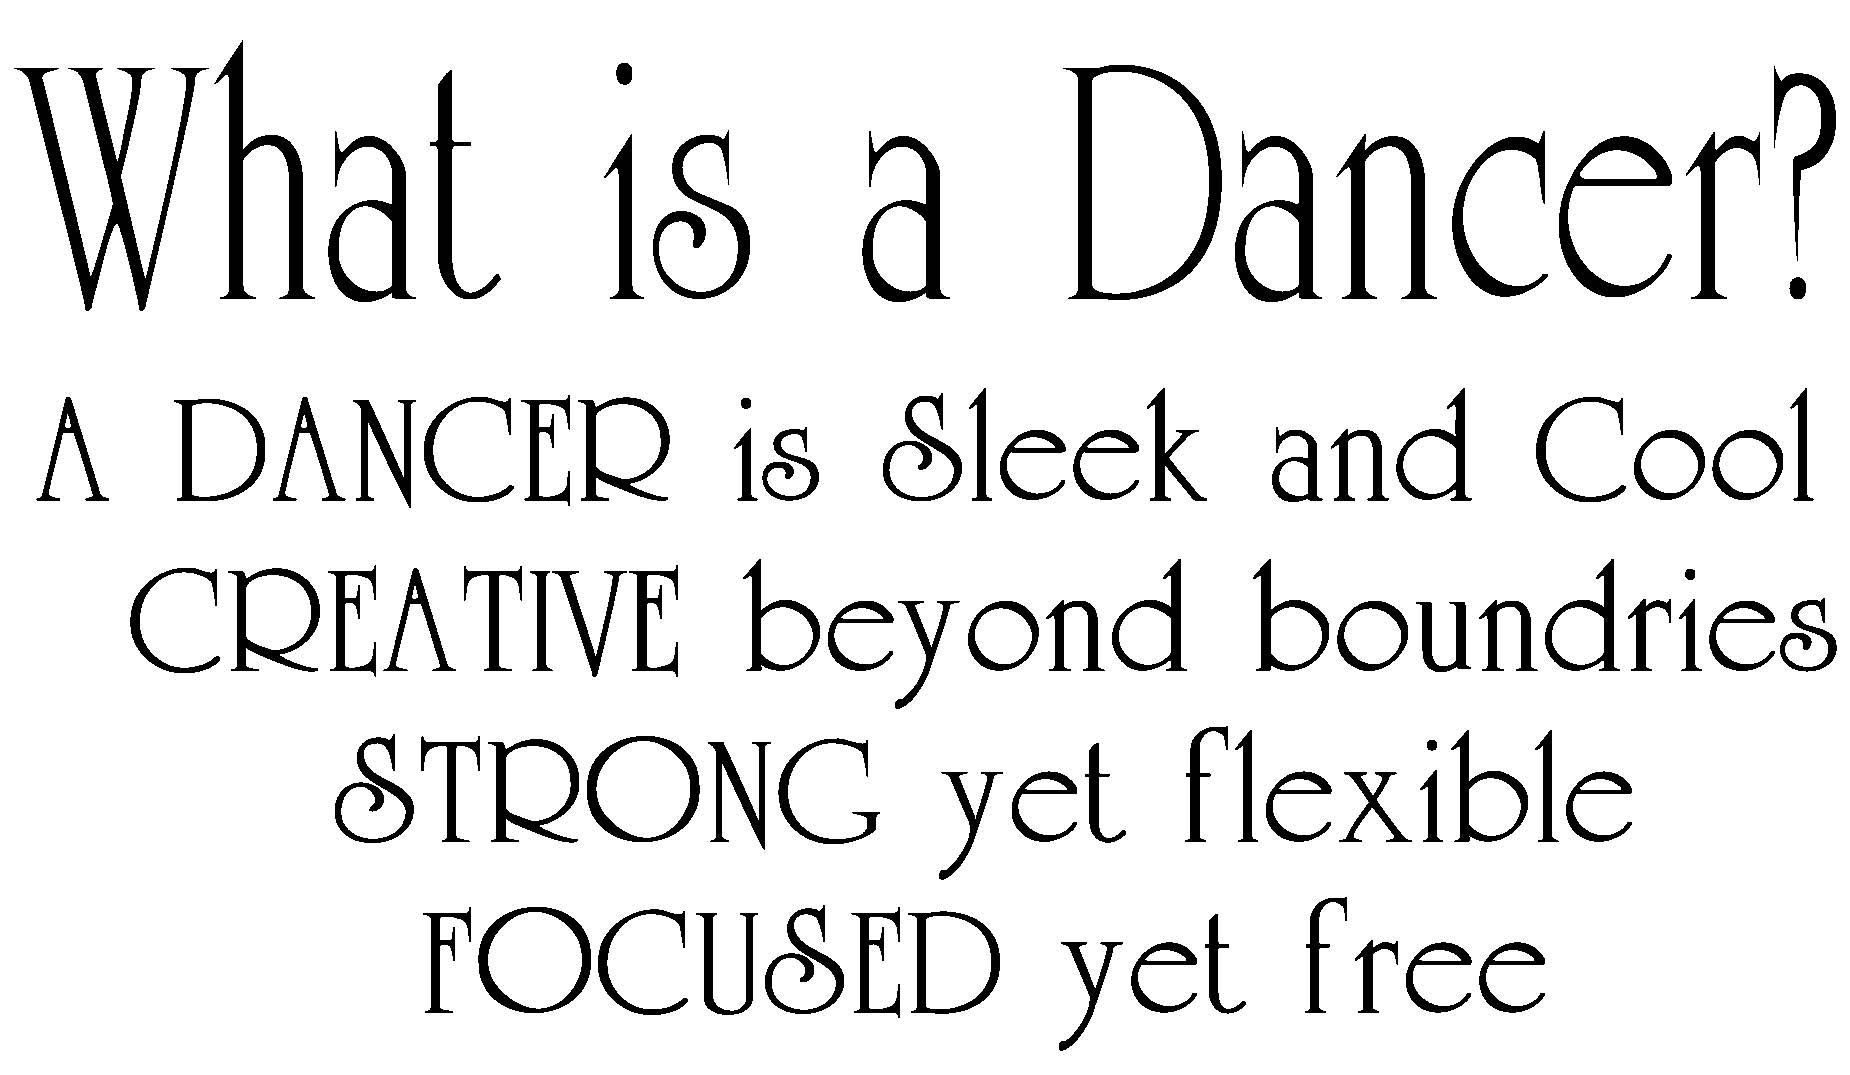 What is a dancer1 A dancer is sleek and cool creative beyond boundries strong yet flexible focused yet free